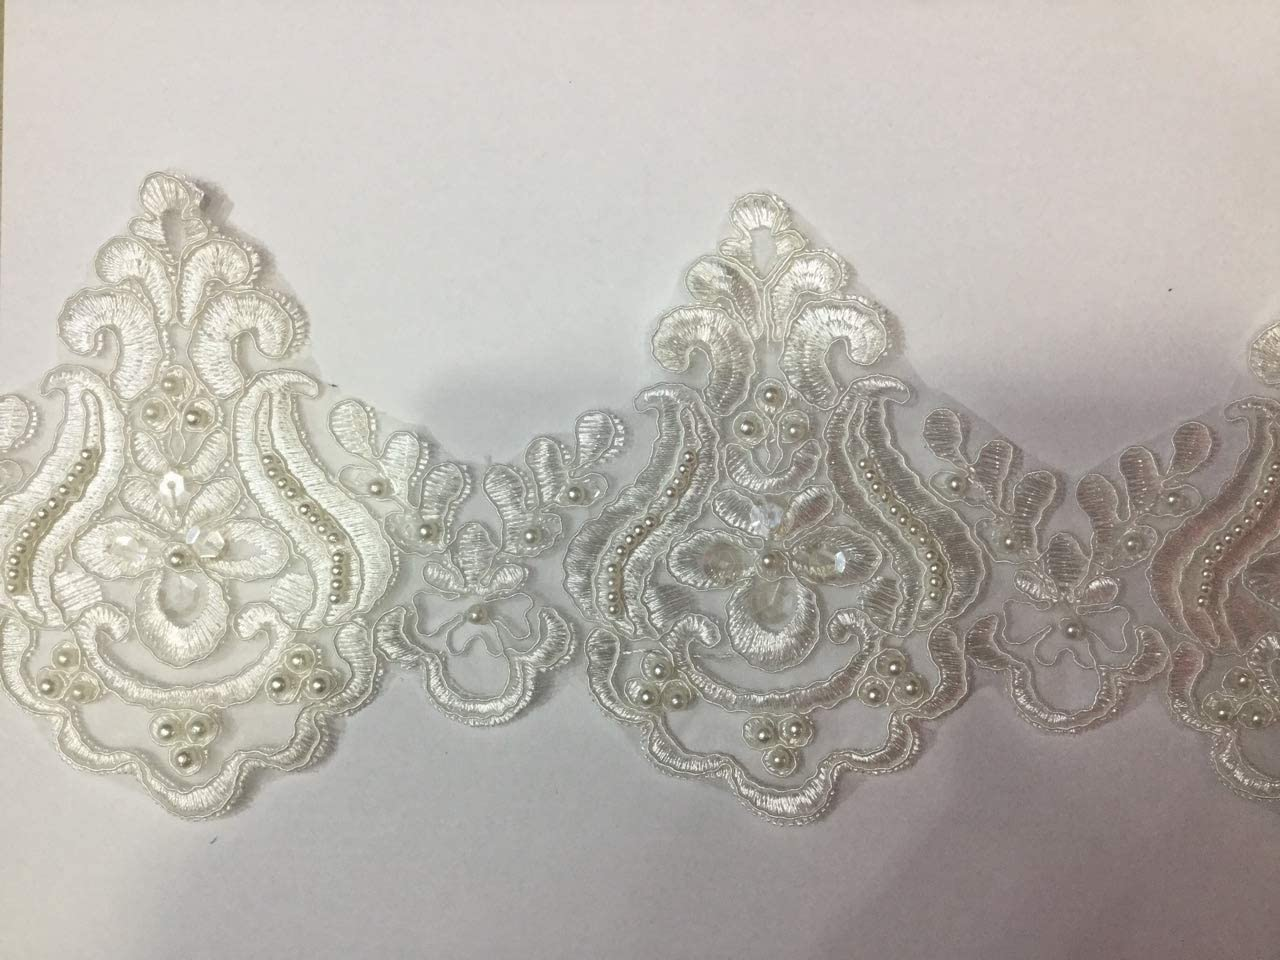 Beaded Lace Trim Sequinned Vintage Decorative Wedding/Bridal DIY Craft Sewing Coloured Fabric TR3 (White 5 Yards)